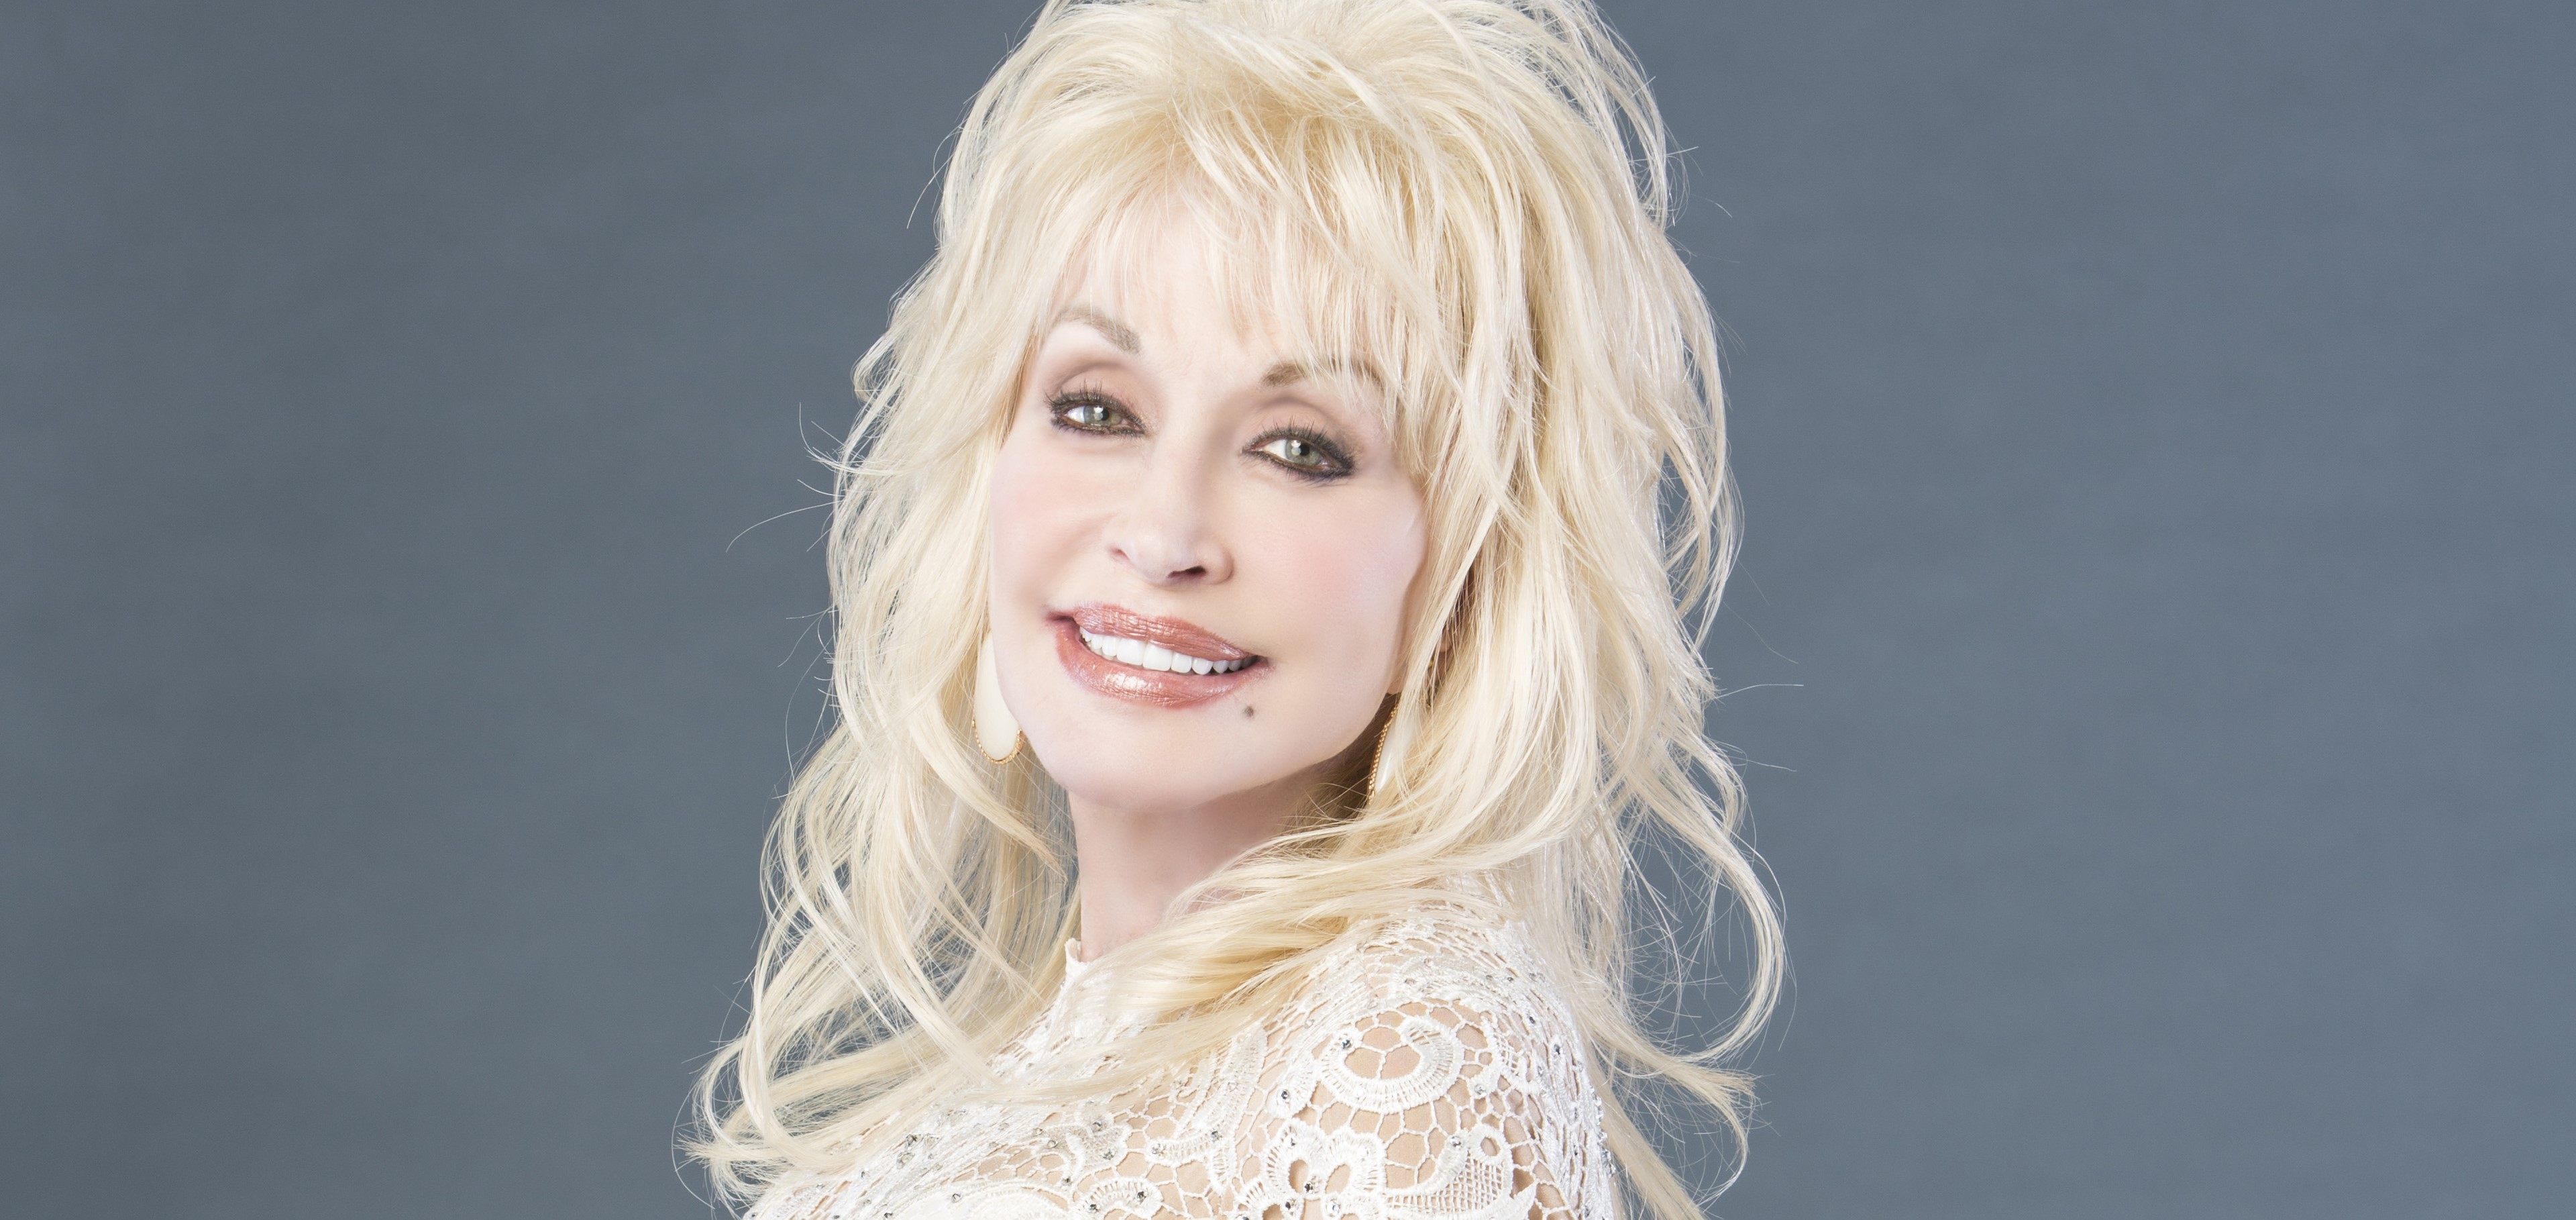 DOLLY PARTON'S 'PURE & SIMPLE' DEBUTS AT #1 ON THE  ARIA COUNTRY CHART!